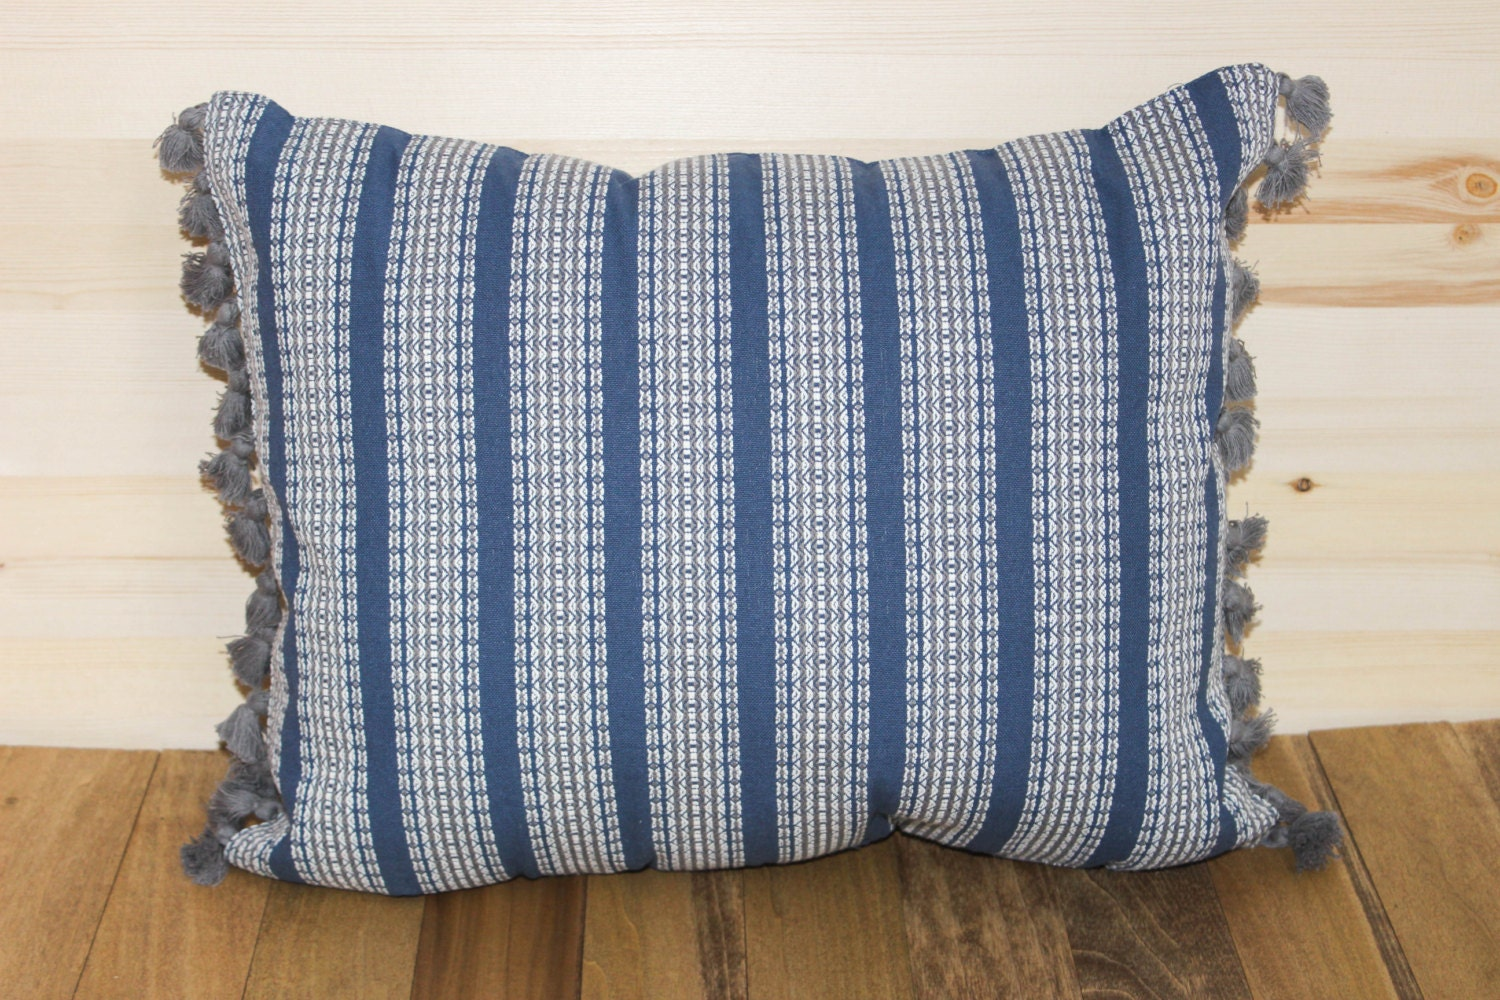 Decorative Pillows With Tassels : Blue Tribal Throw Pillow with Tassels by sparrowbloom on Etsy